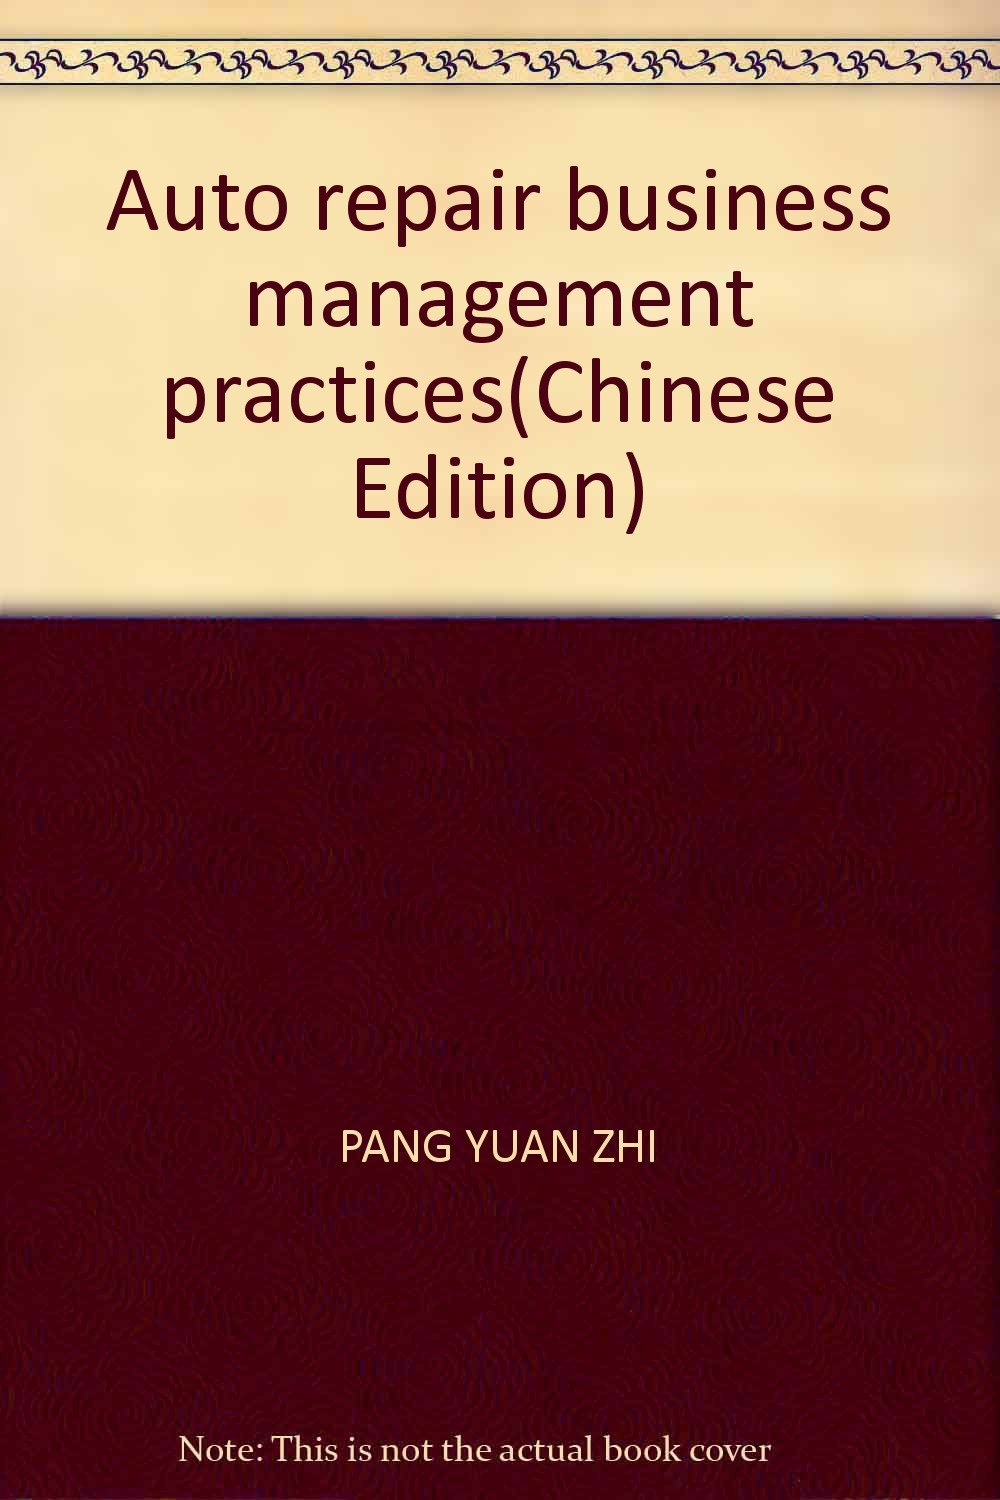 Download Auto repair business management practices(Chinese Edition) ebook